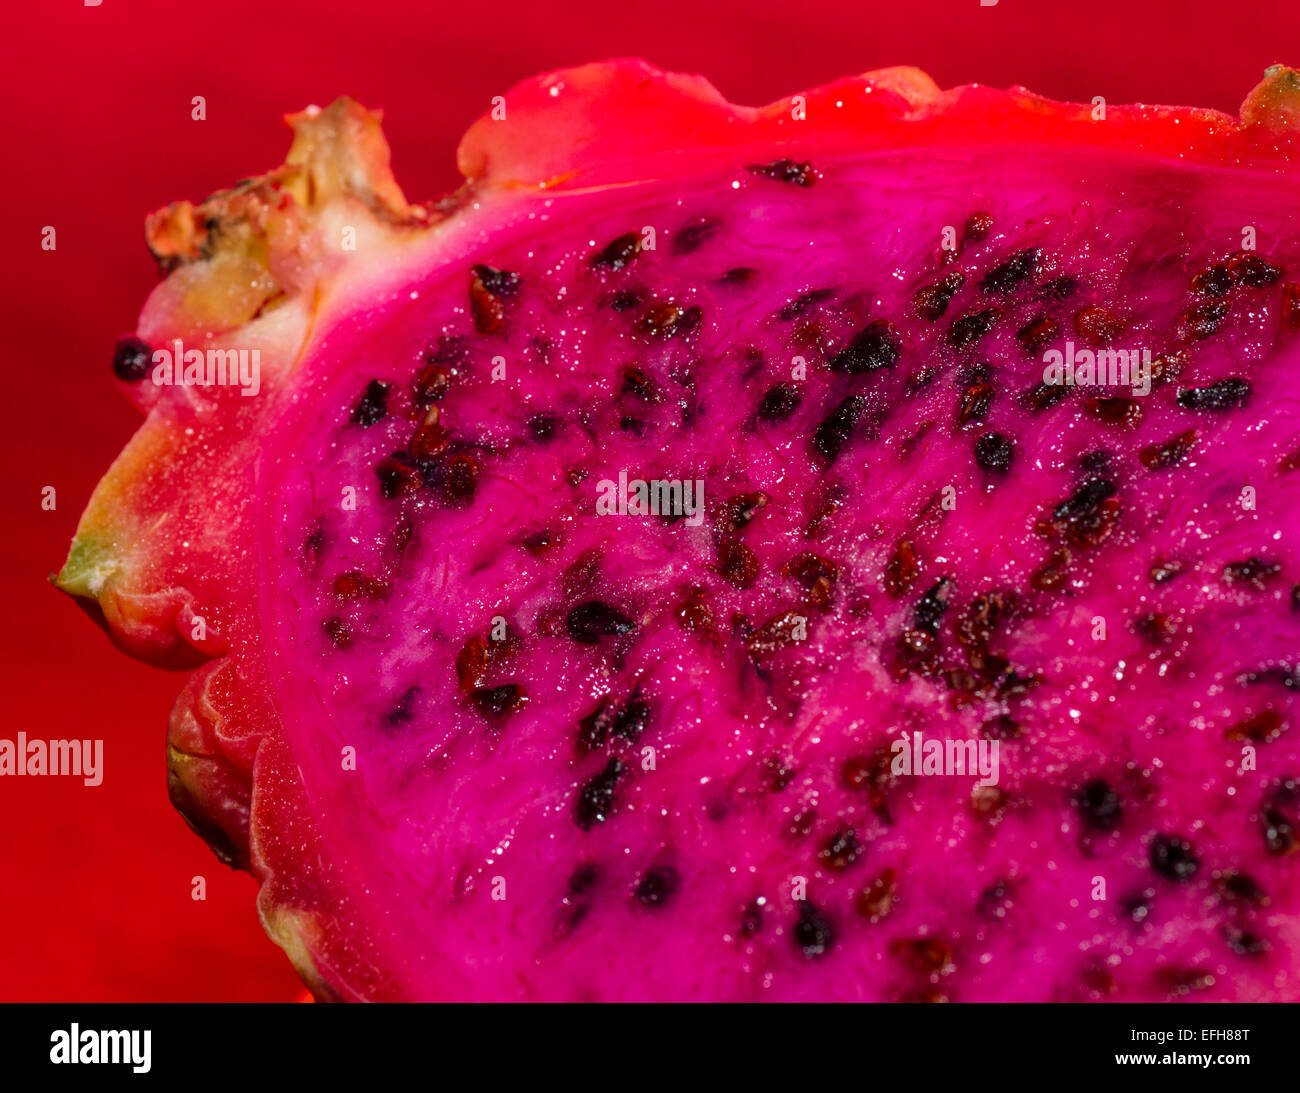 vibrant pitaya dragonfruit with bright pink flesh and red skin - Stock Image